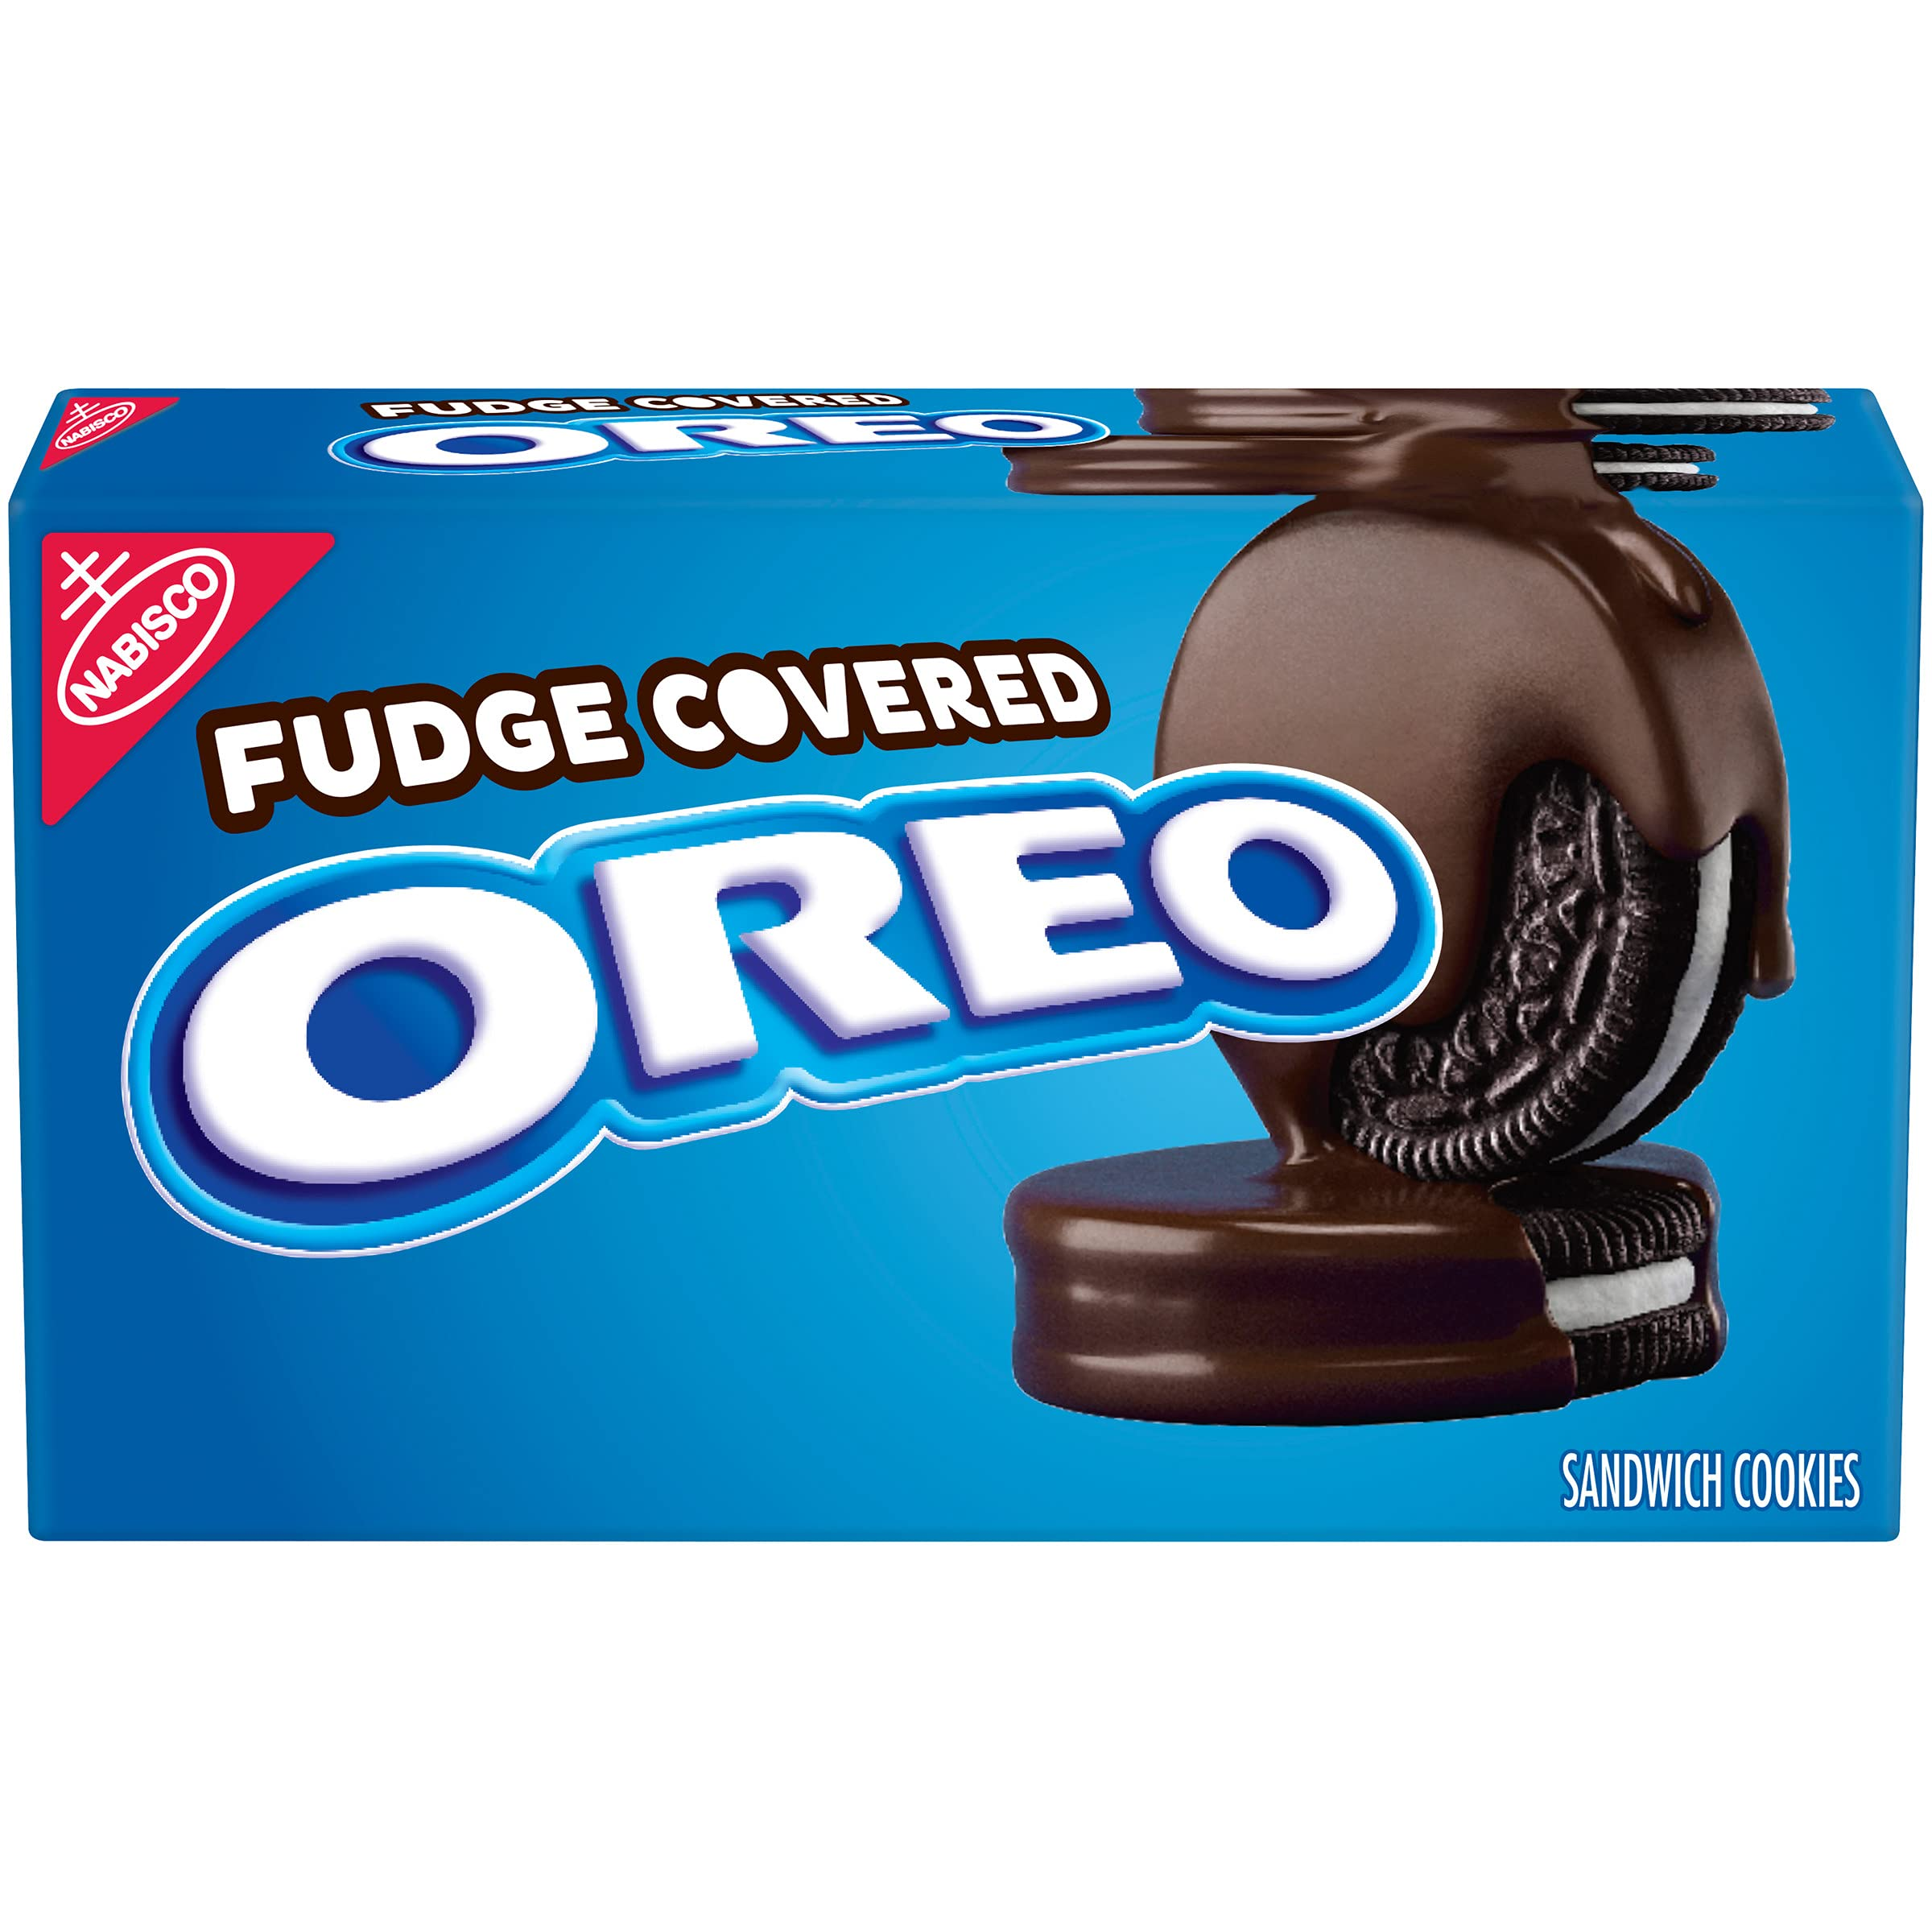 OREO Fudge Covered Chocolate Sandwich Cookies, Original Flavor, 1 Box (7.9 oz)